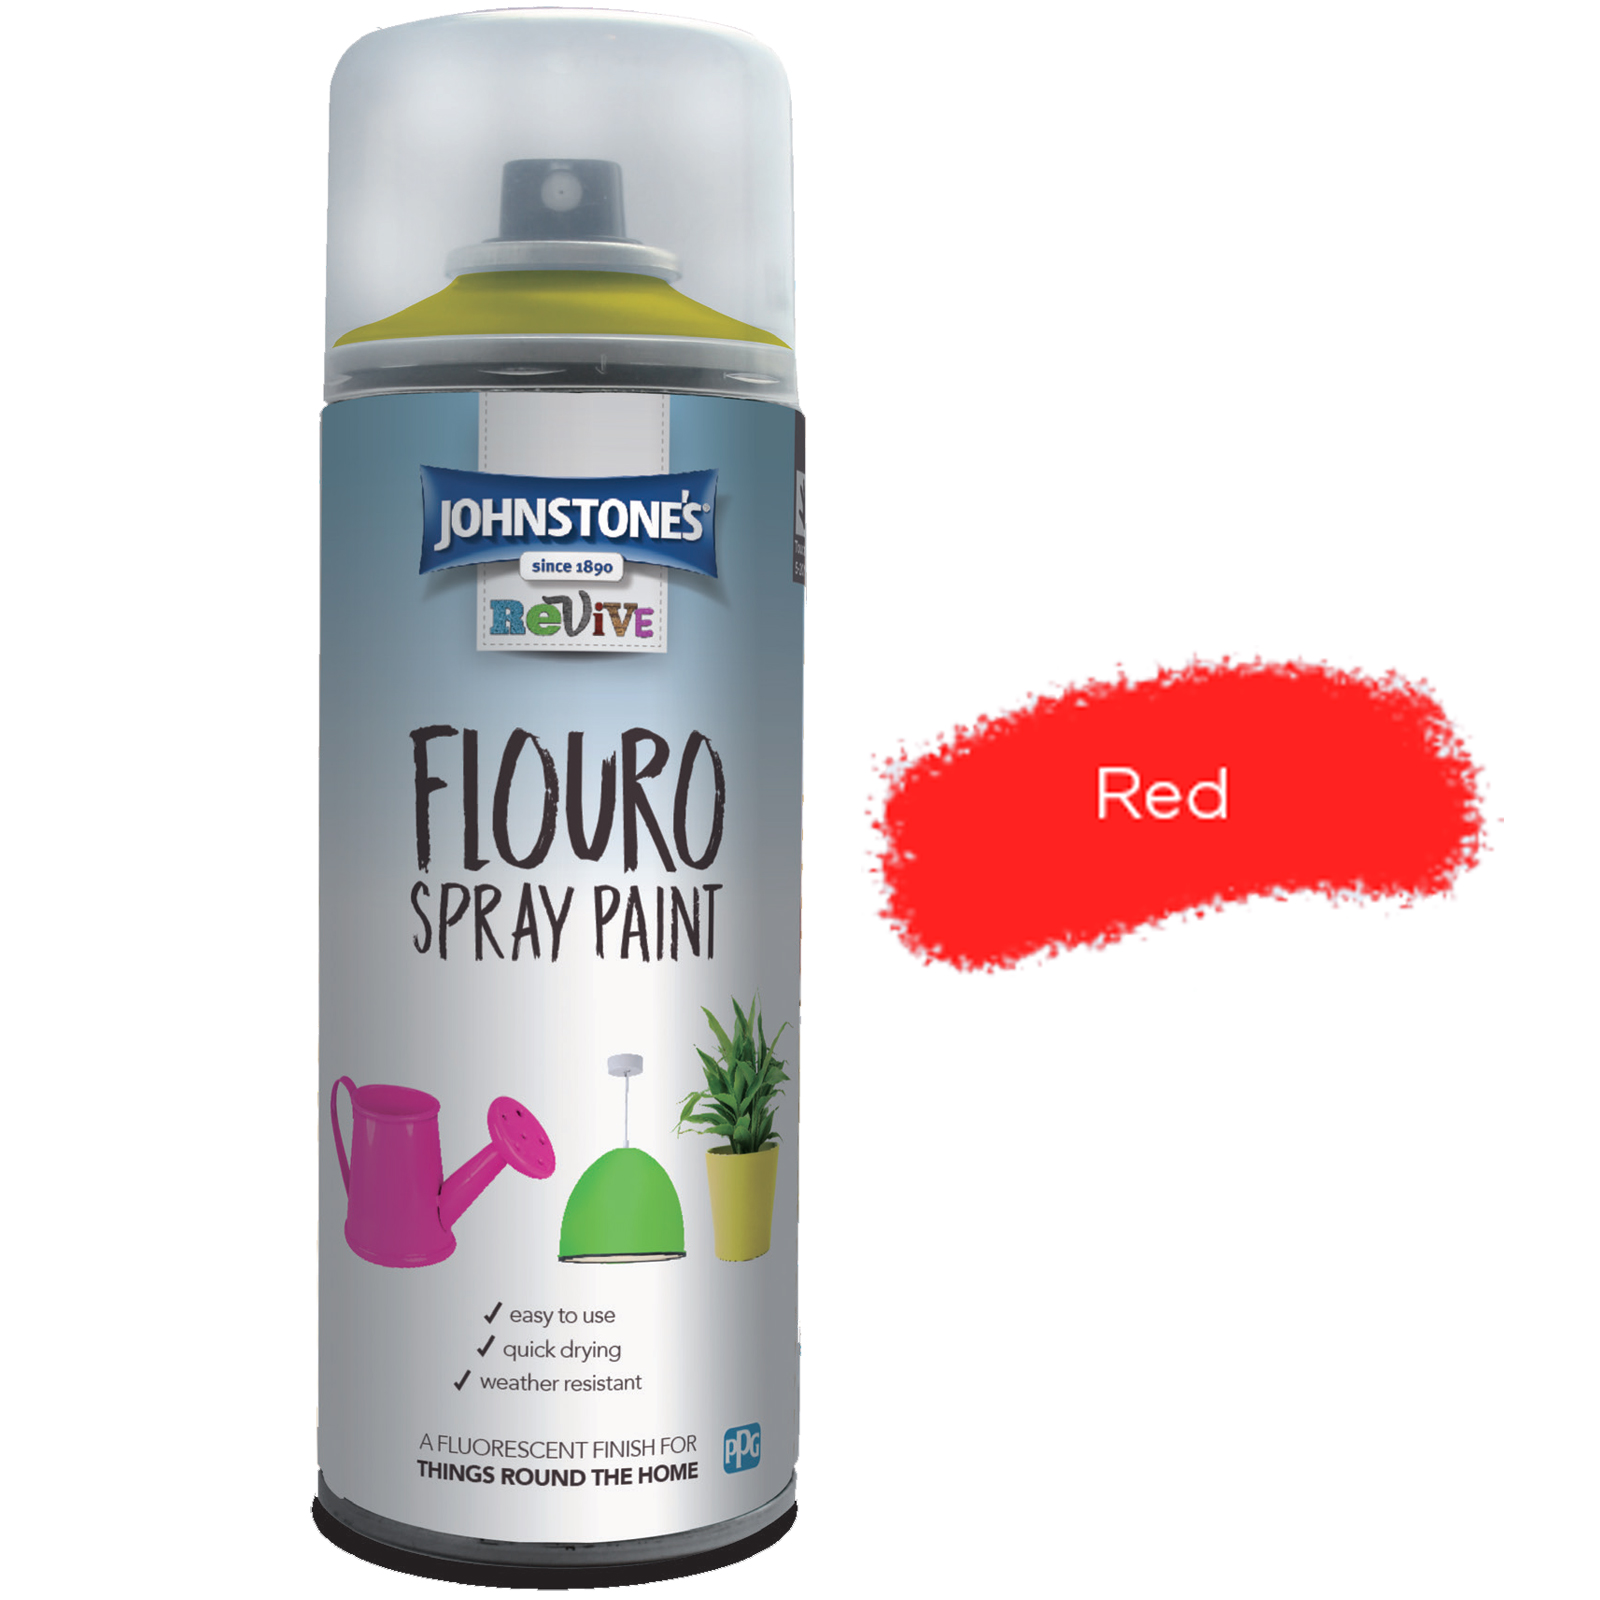 FLOURO SPRAY PAINT RED